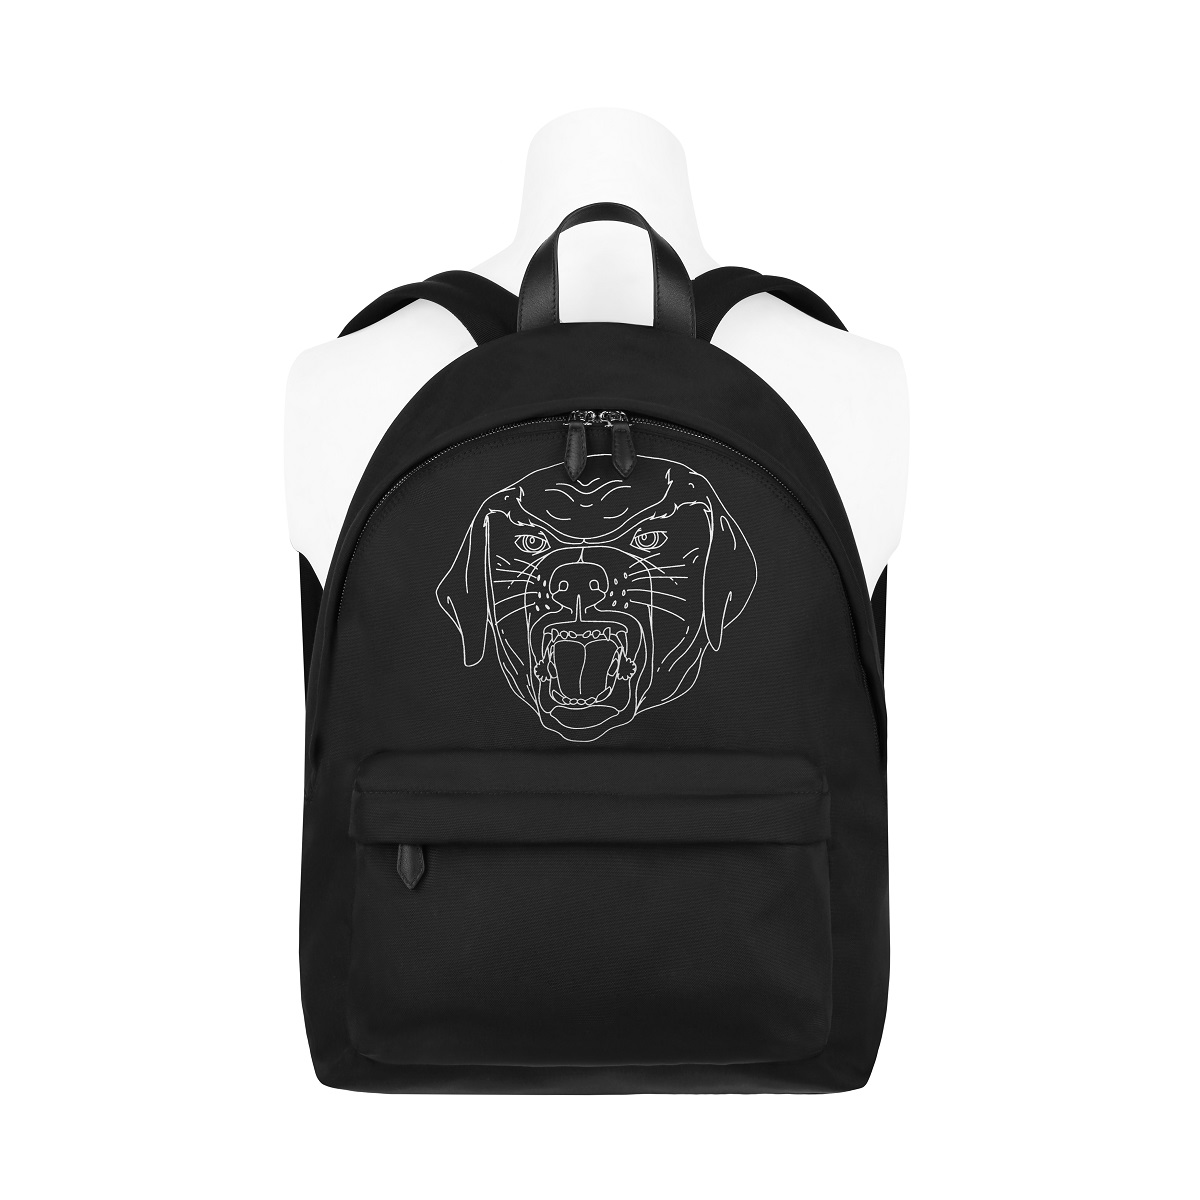 GIVENCHY RTWLR CAPSULE - LLG 12222